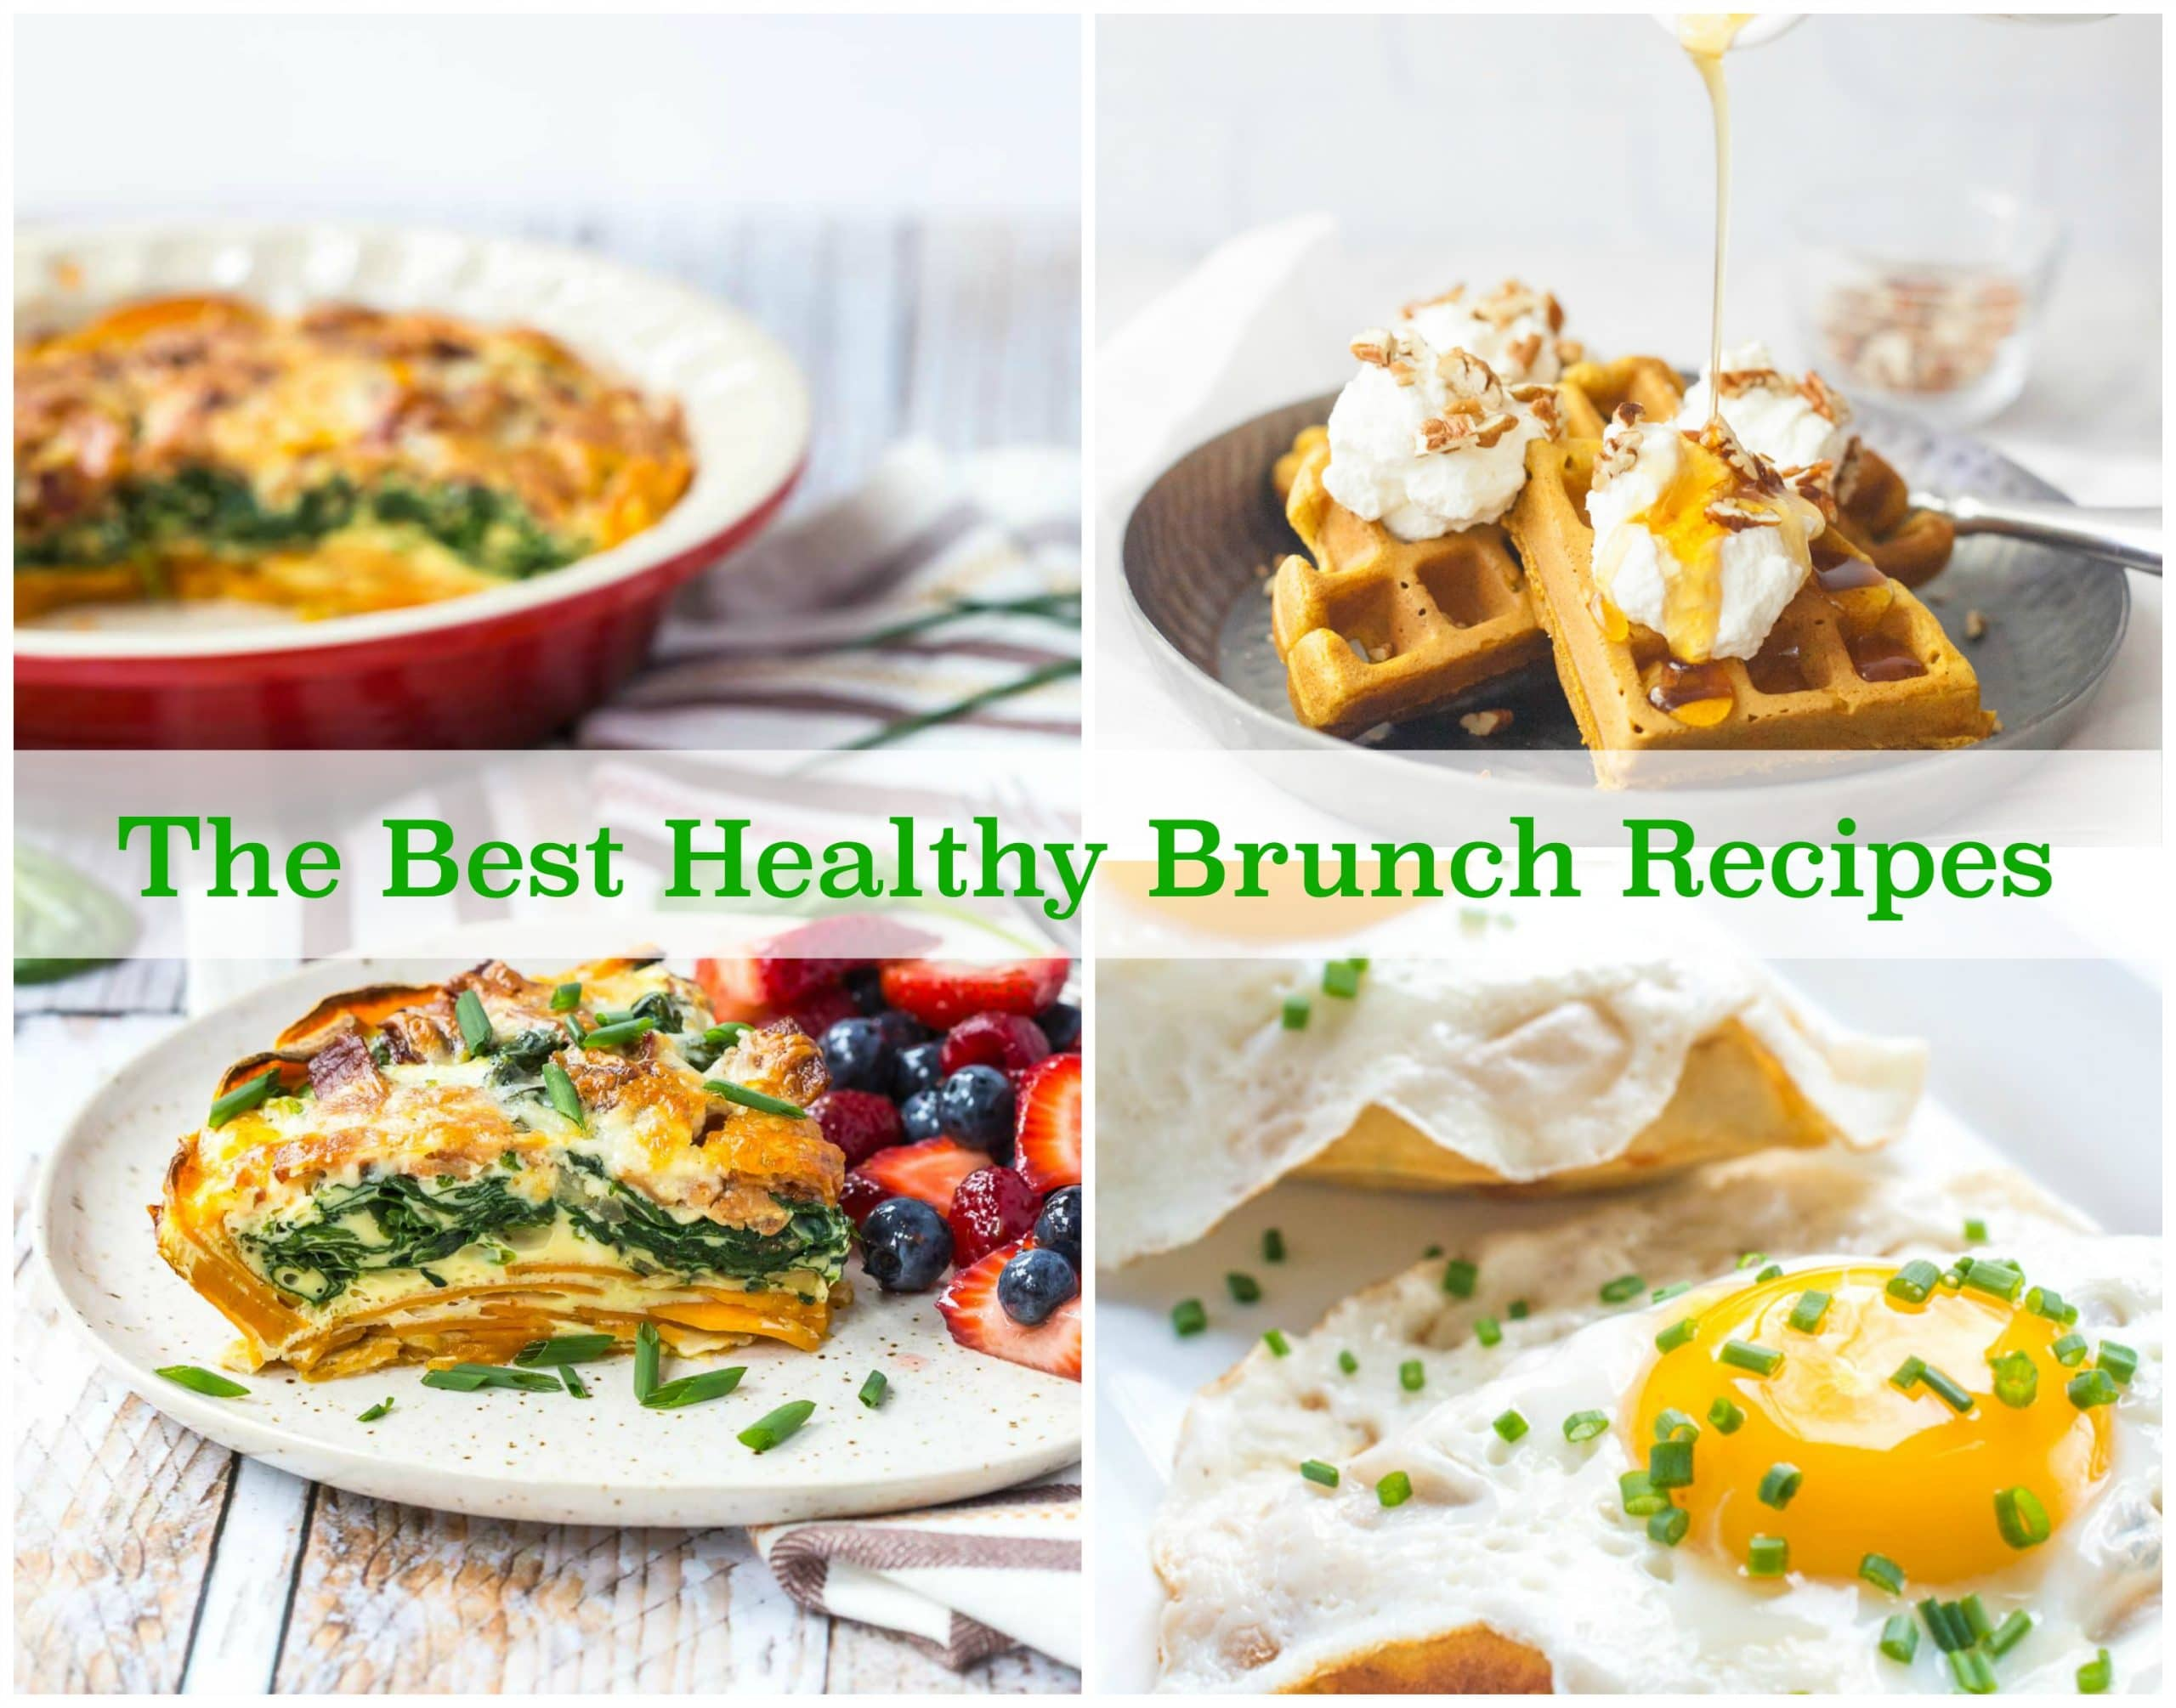 Healthy Brunch Recipes to Start the Year Off Right Healthy Brunch Recipes to Start the Year Off Right new picture